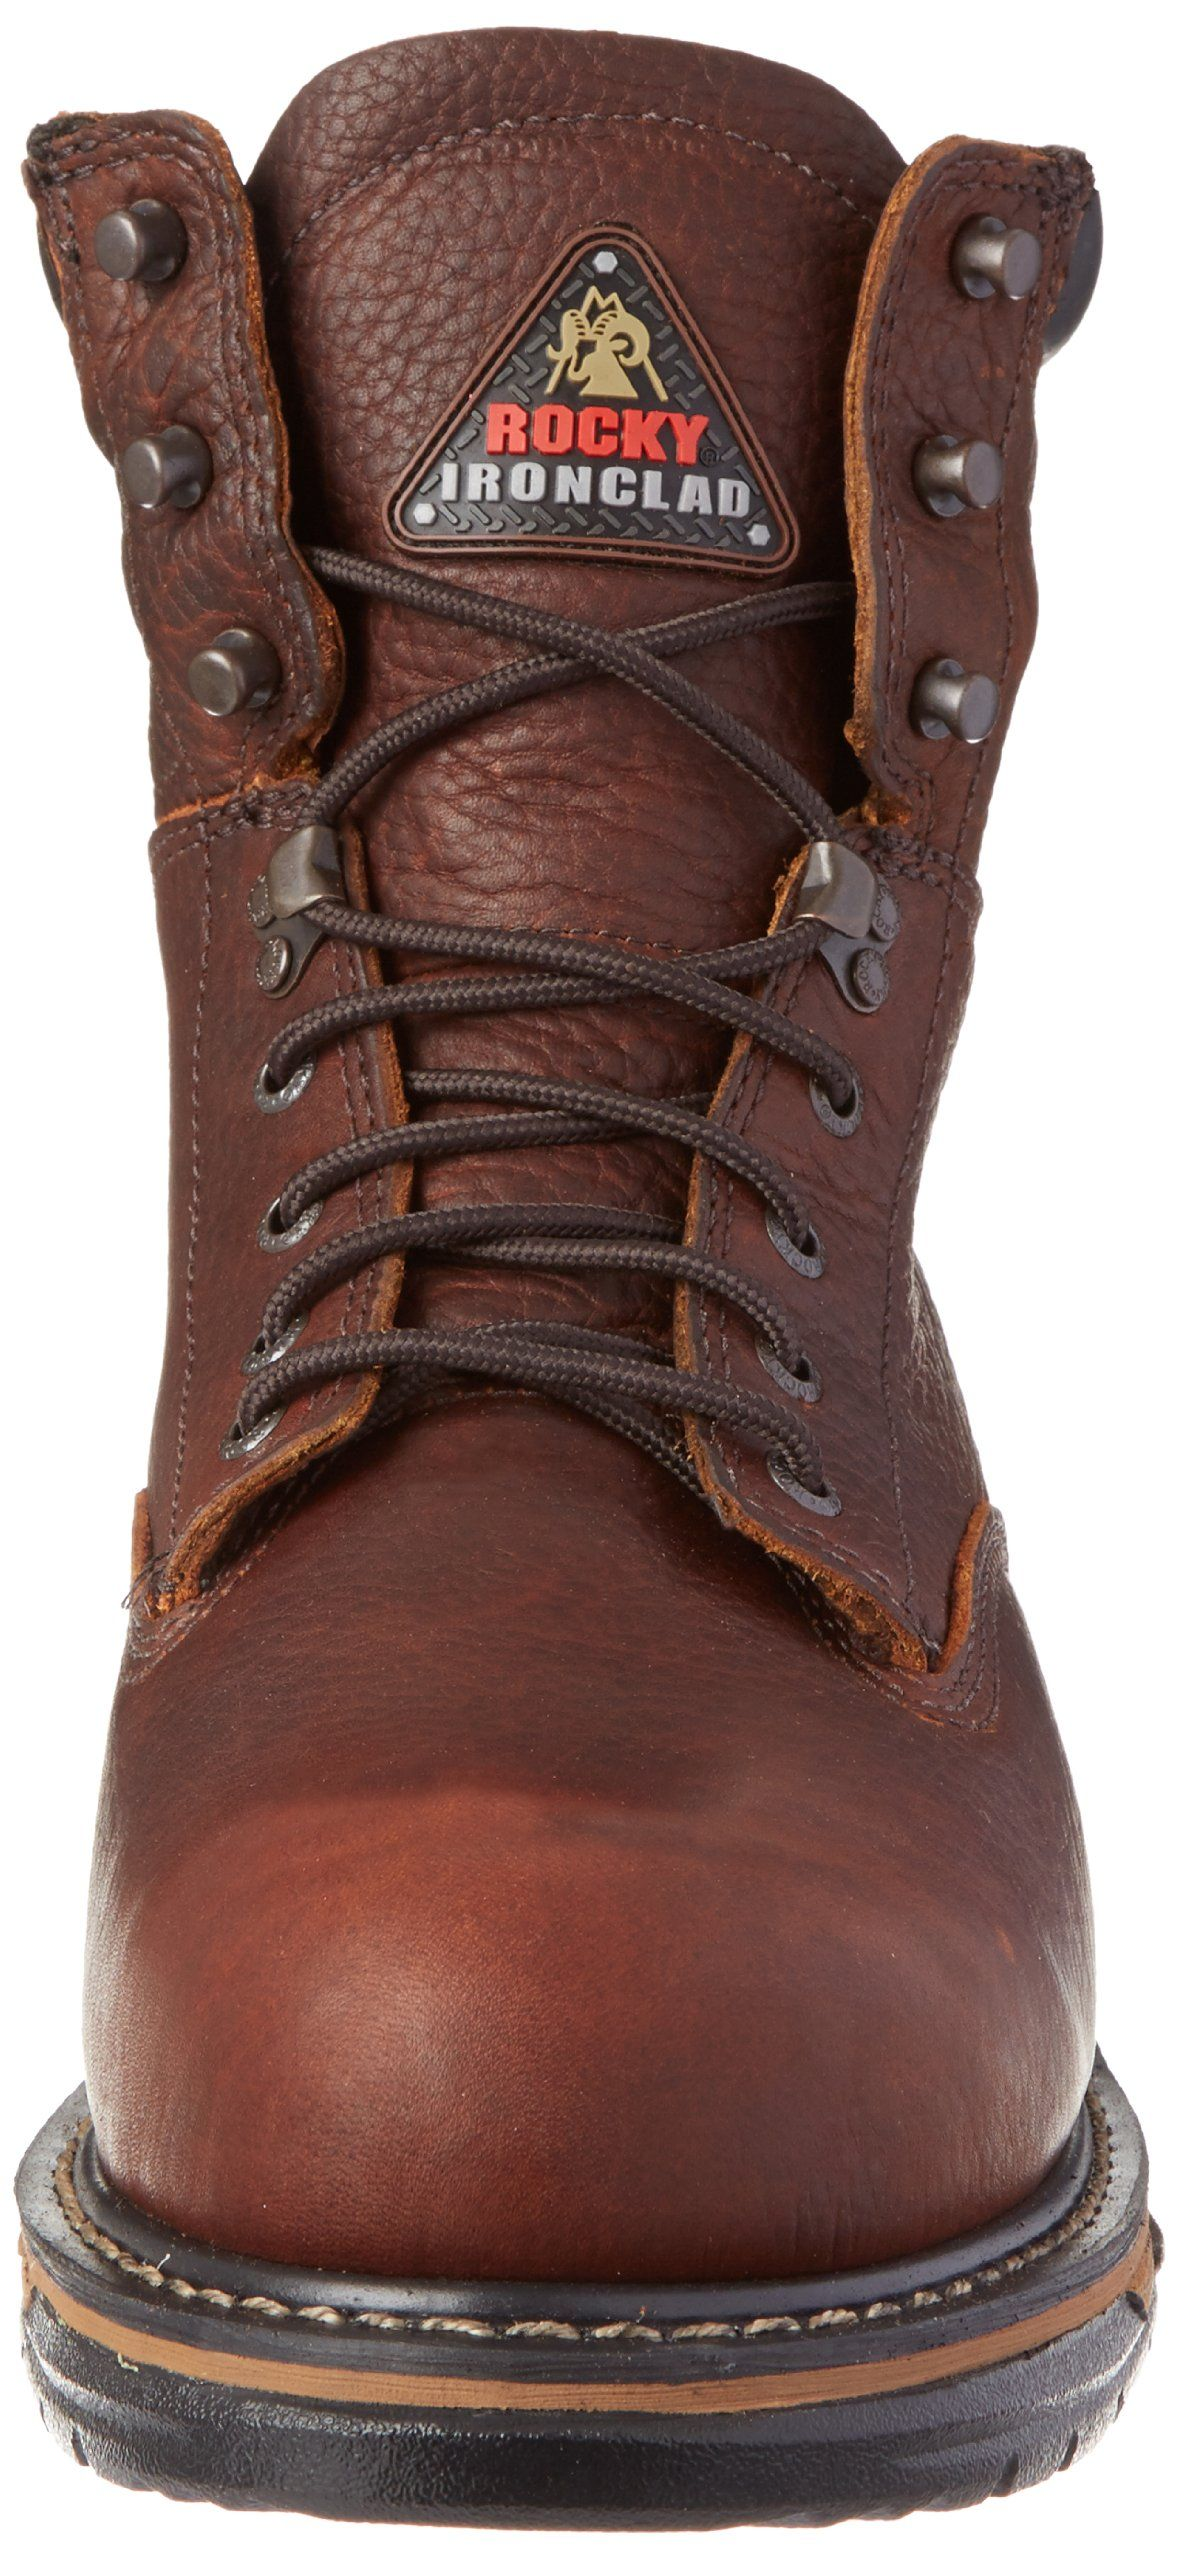 469e8e4bb69 Rocky Mens Iron Clad Eight Inch Steel Toe Work BootBrown11.5 M US ...